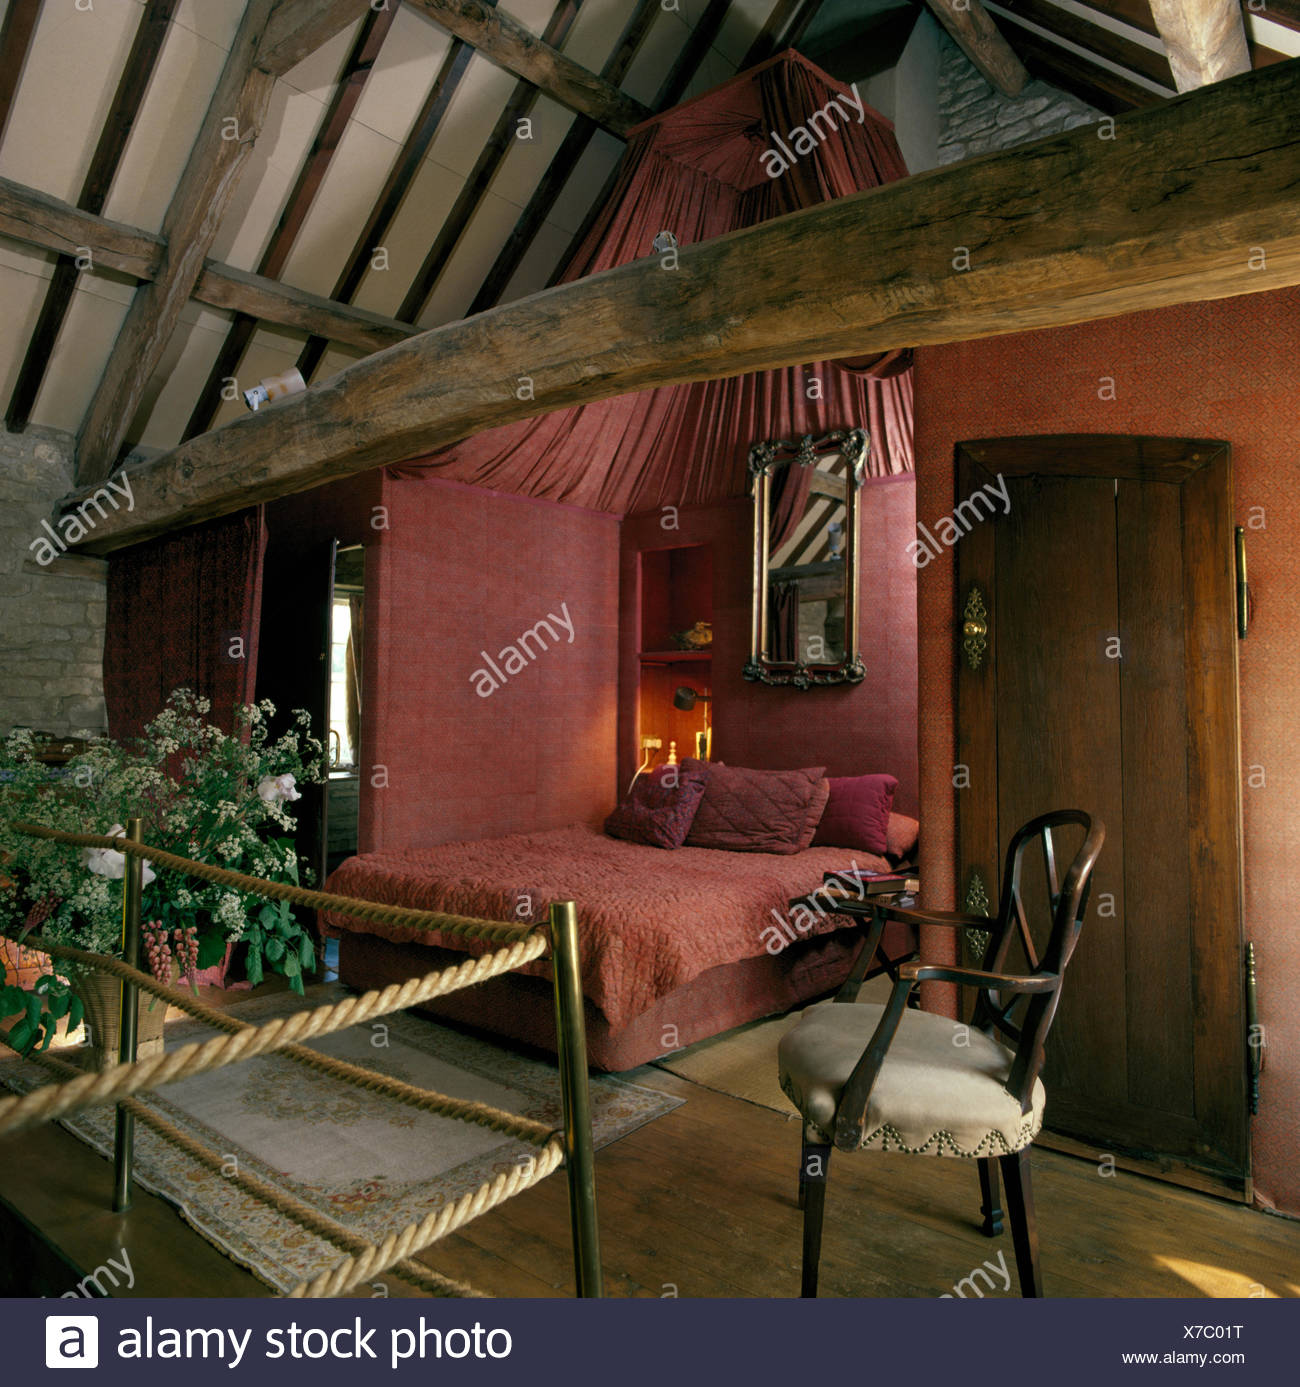 Pink Fabric On Walls In Open Plan Bedroom In Nineties Barn Conversion With  Rustic Wooden Beams On Ceiling